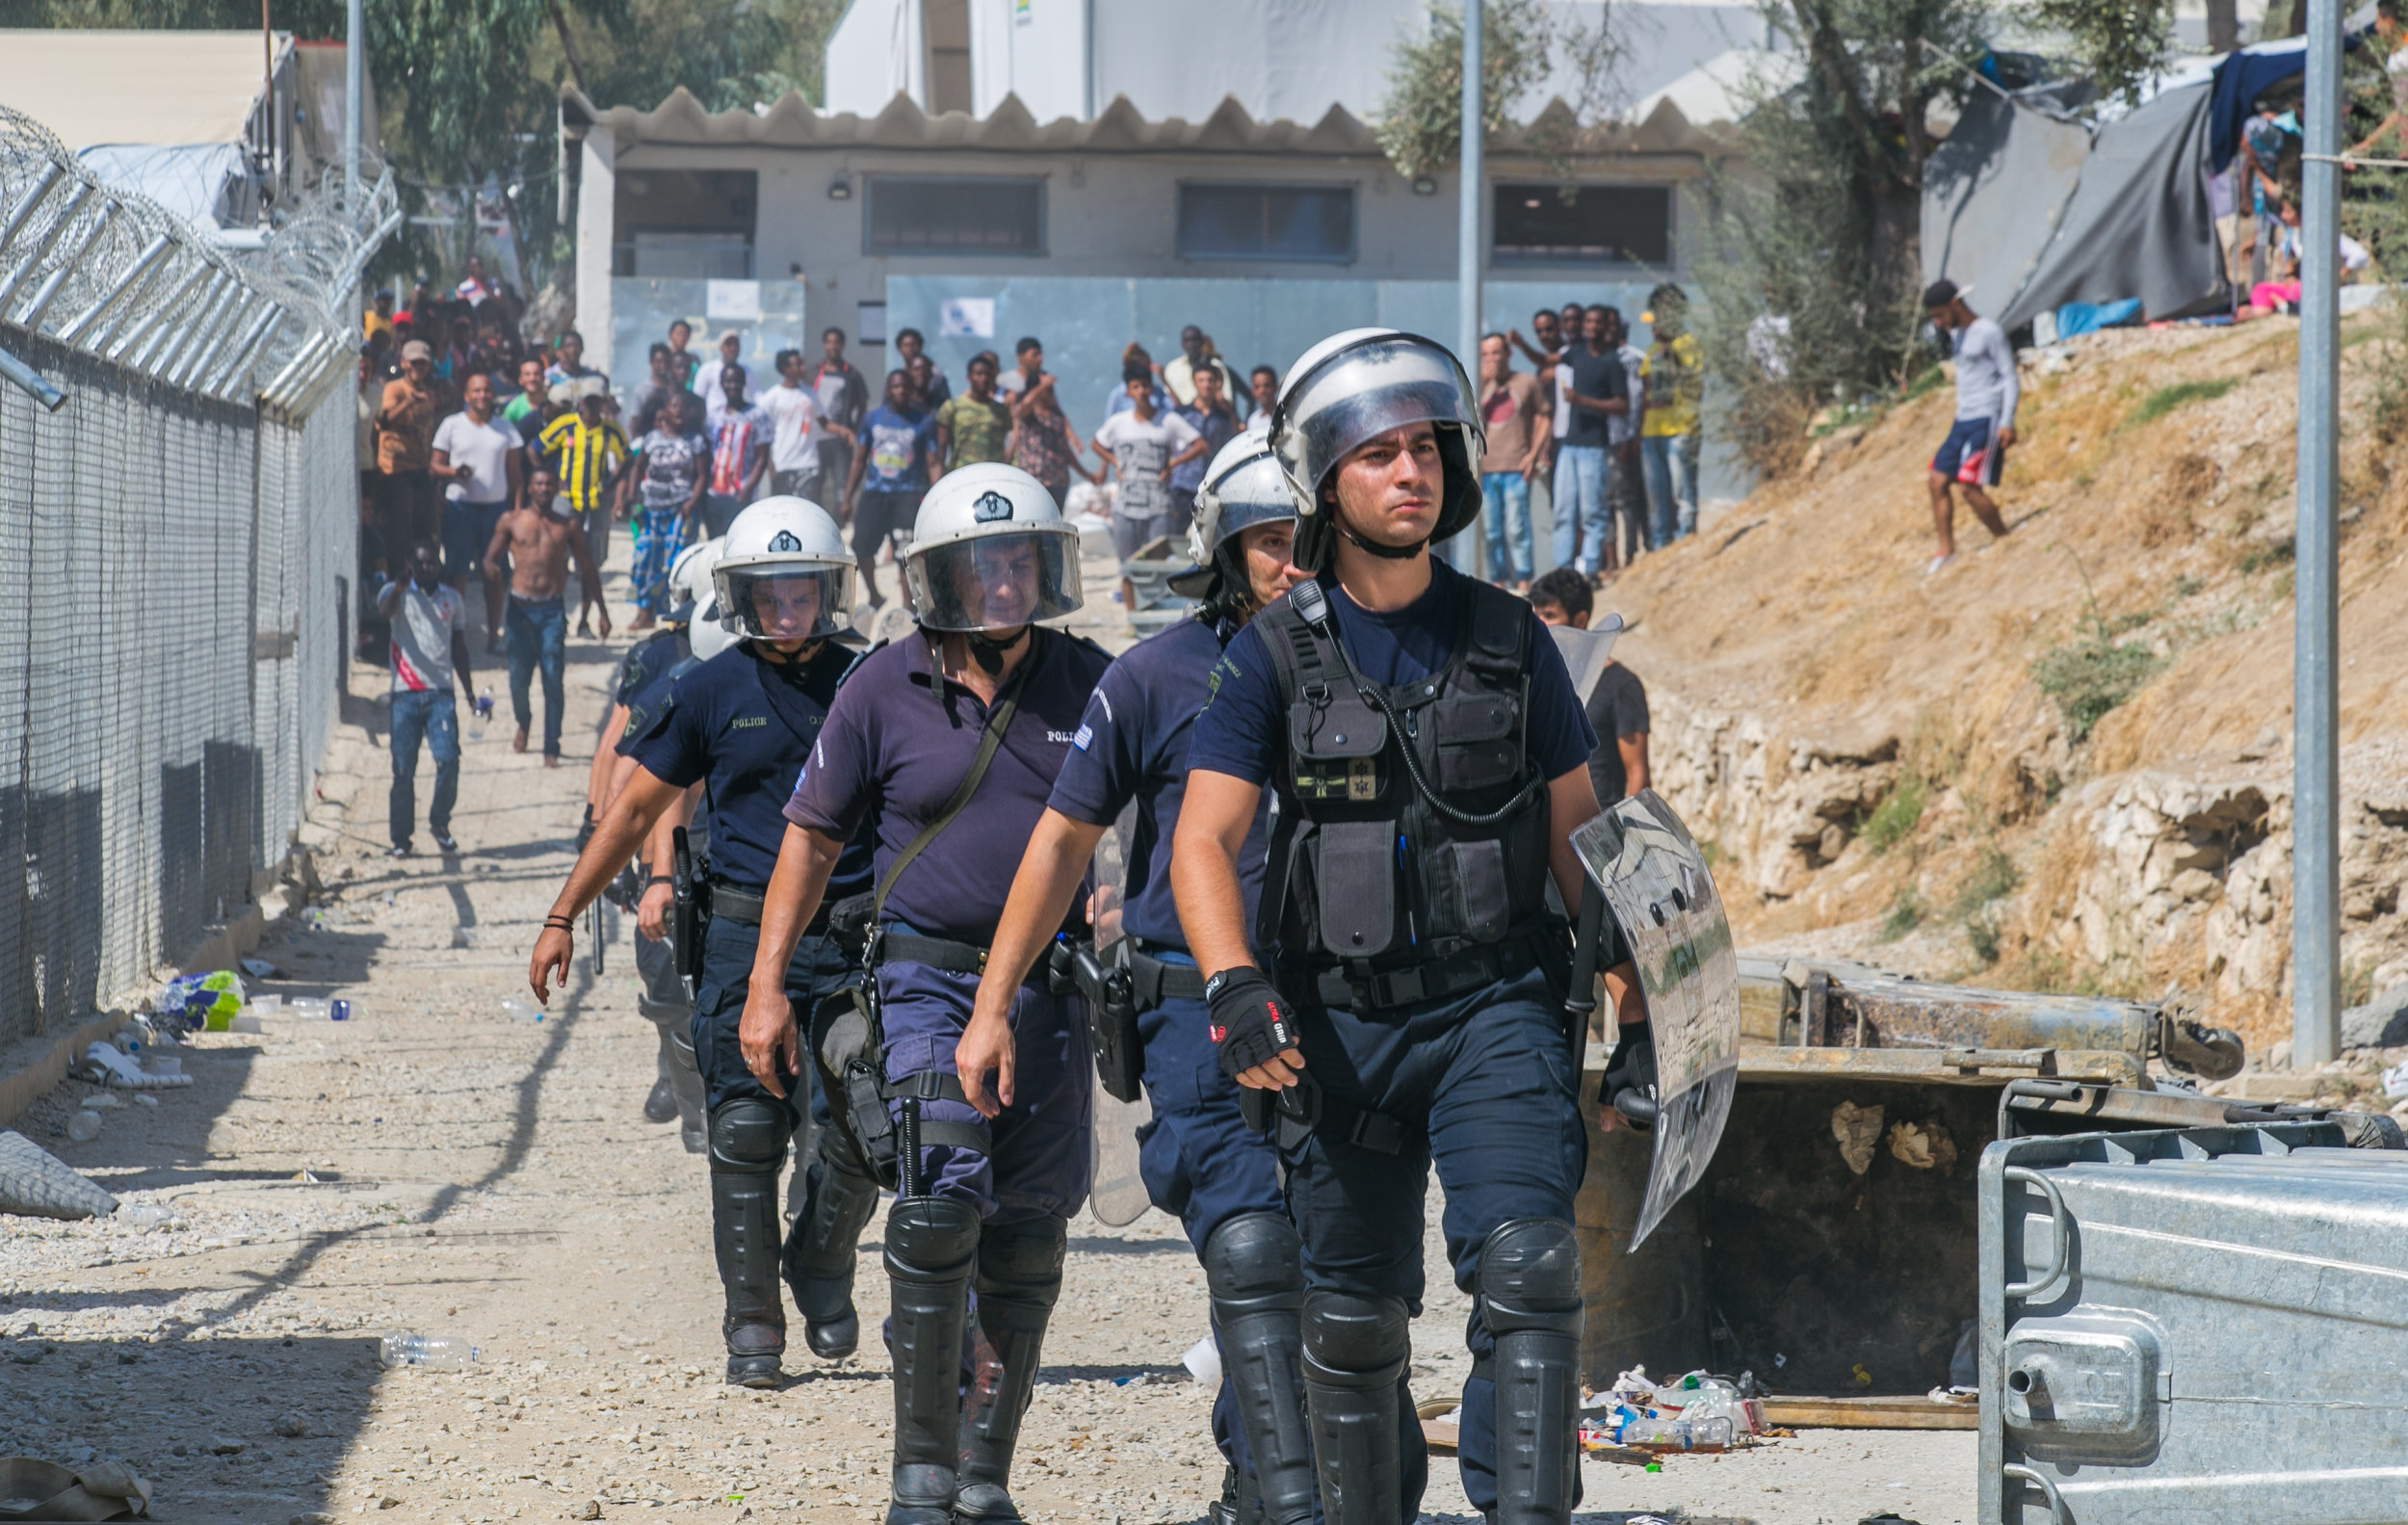 09/19/16 - 2:30pm: Greek riot police return to their compound as a crowd of migrants gathered to chant and throw rocks.